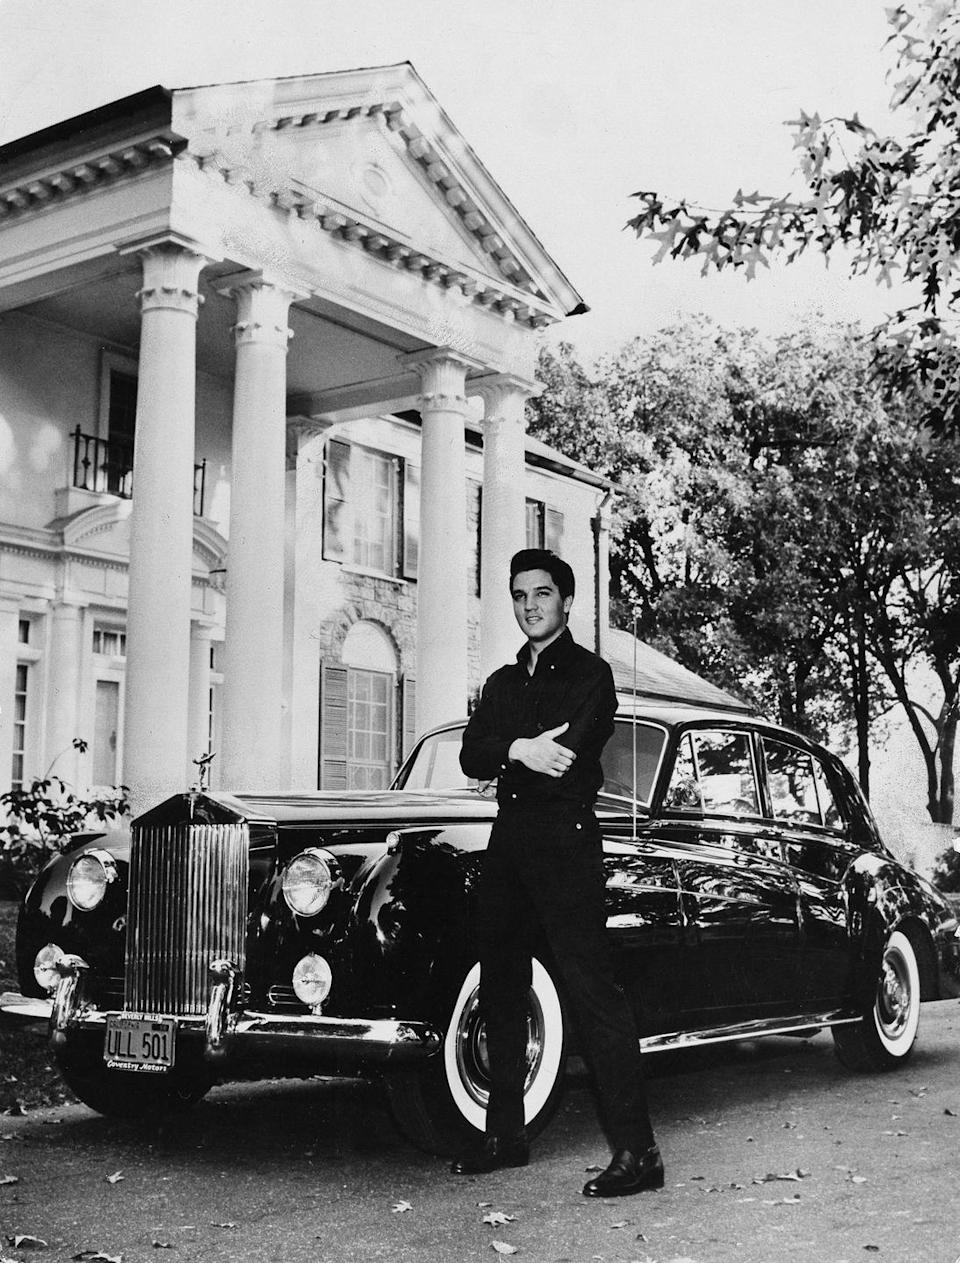 "<p>From his pink Cadillac to his 1973 Stutz Blackhawk, Elvis was quite a car enthusiast and turned to his expansive Memphis property to house his collection. They remained in his private collection after his death, and many are available to <a href=""https://www.graceland.com/epm"" rel=""nofollow noopener"" target=""_blank"" data-ylk=""slk:view today at the Presley Motors Automobile Museum"" class=""link rapid-noclick-resp"">view today at the Presley Motors Automobile Museum</a>. </p>"